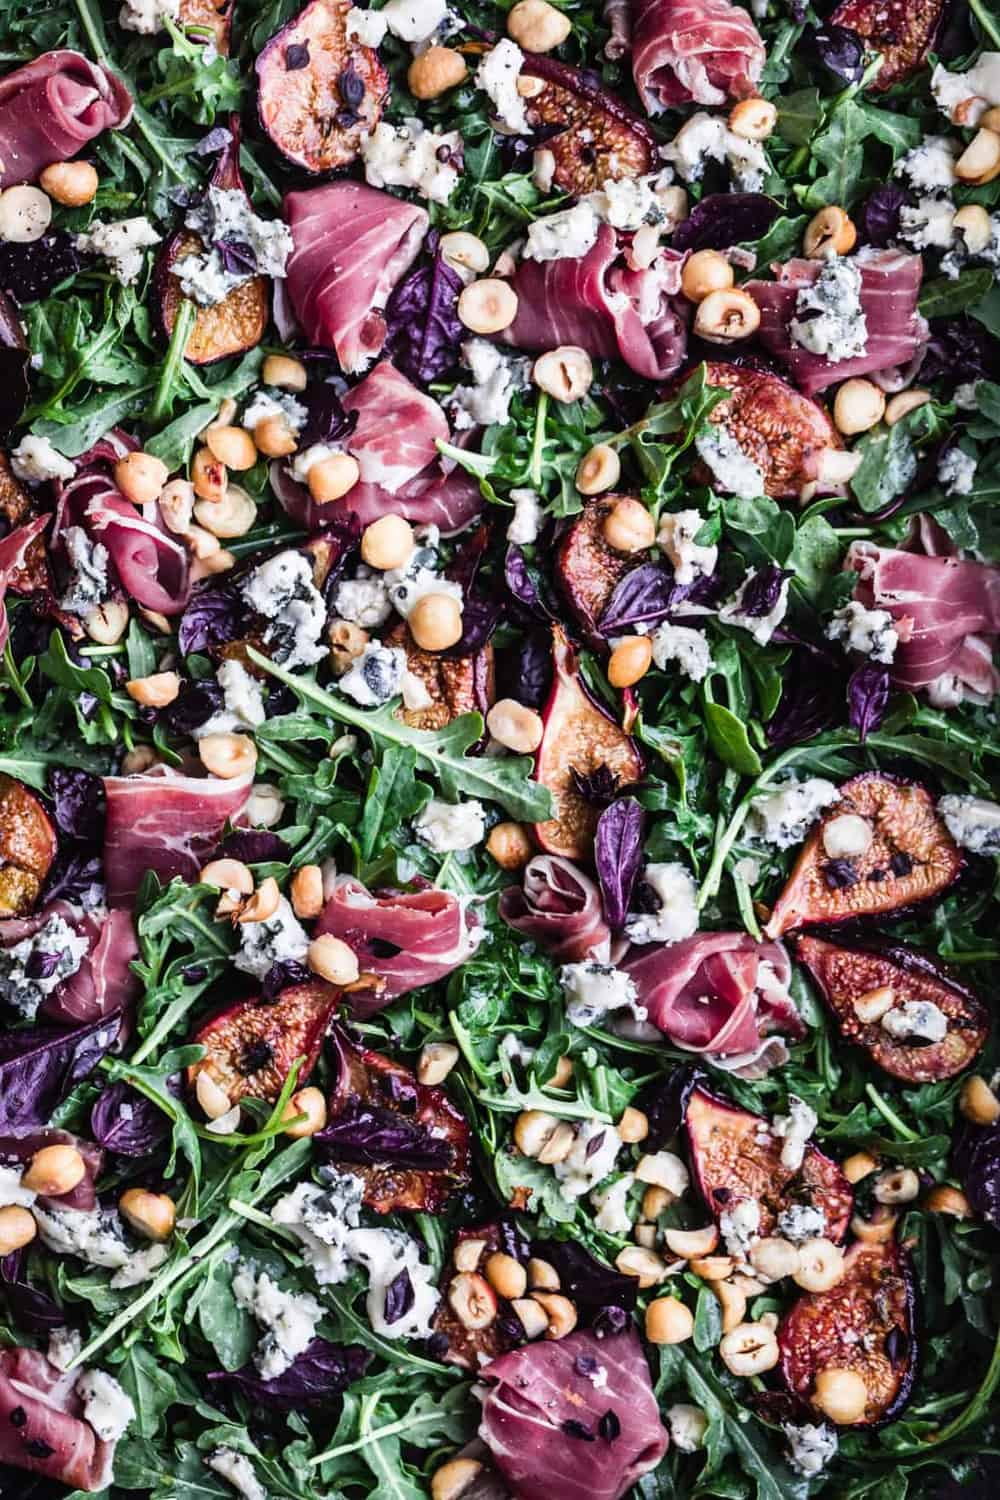 Caramelized Fig & Prosciutto Salad with hazelnuts, basil, blue cheese and arugula. Overhead shot. Up close.